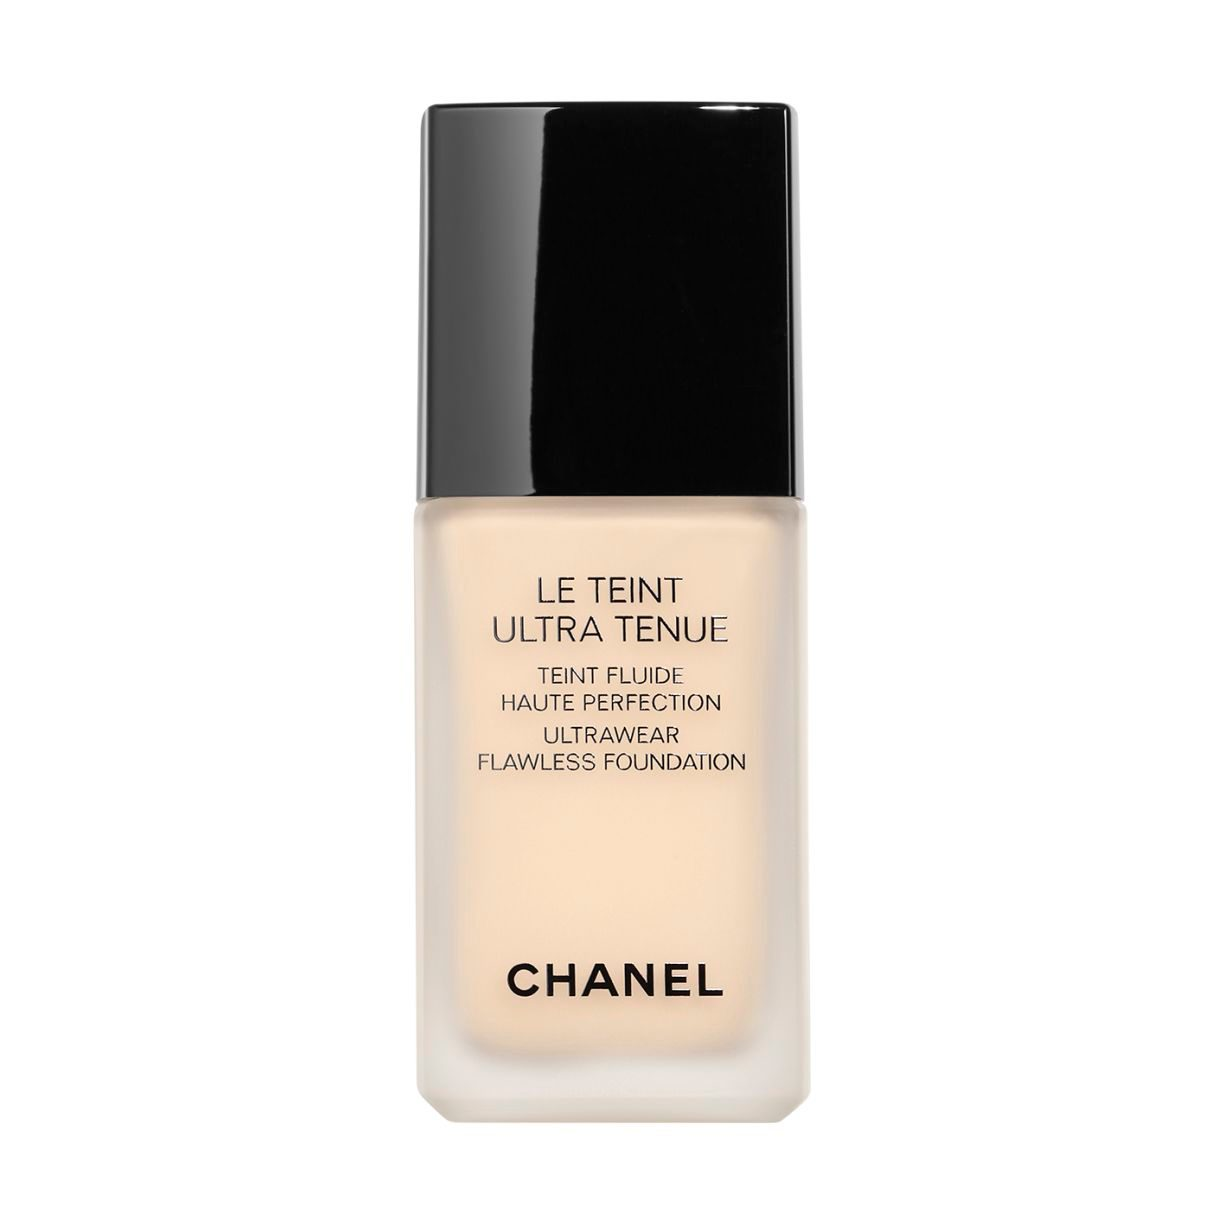 LE TEINT ULTRA TENUE ULTRAWEAR FLAWLESS FOUNDATION